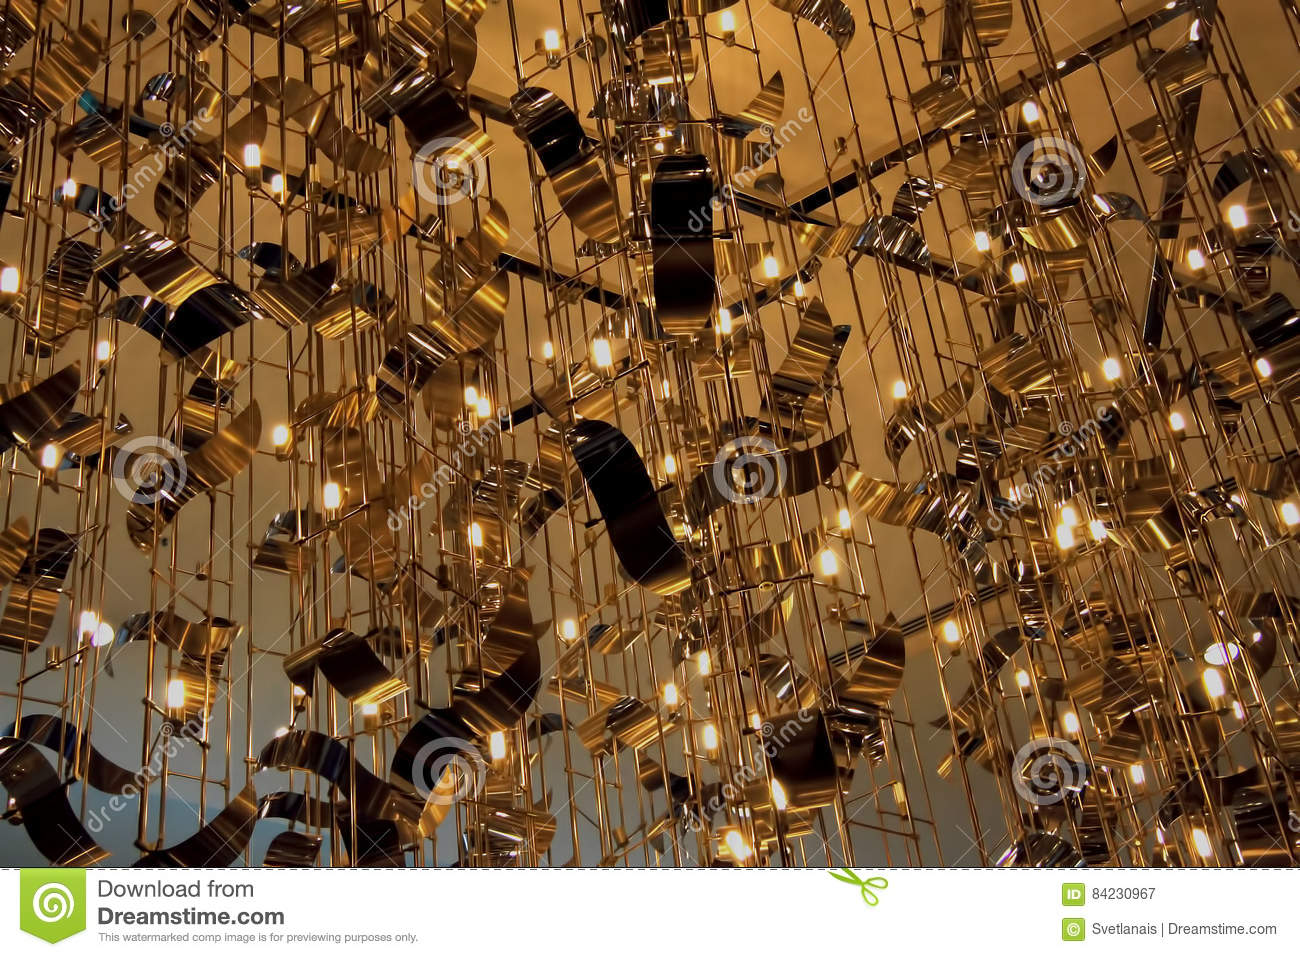 Abstract hanging on the ceiling and swaying randomly distributed metal shapes, lines with neon lights. Concept Business